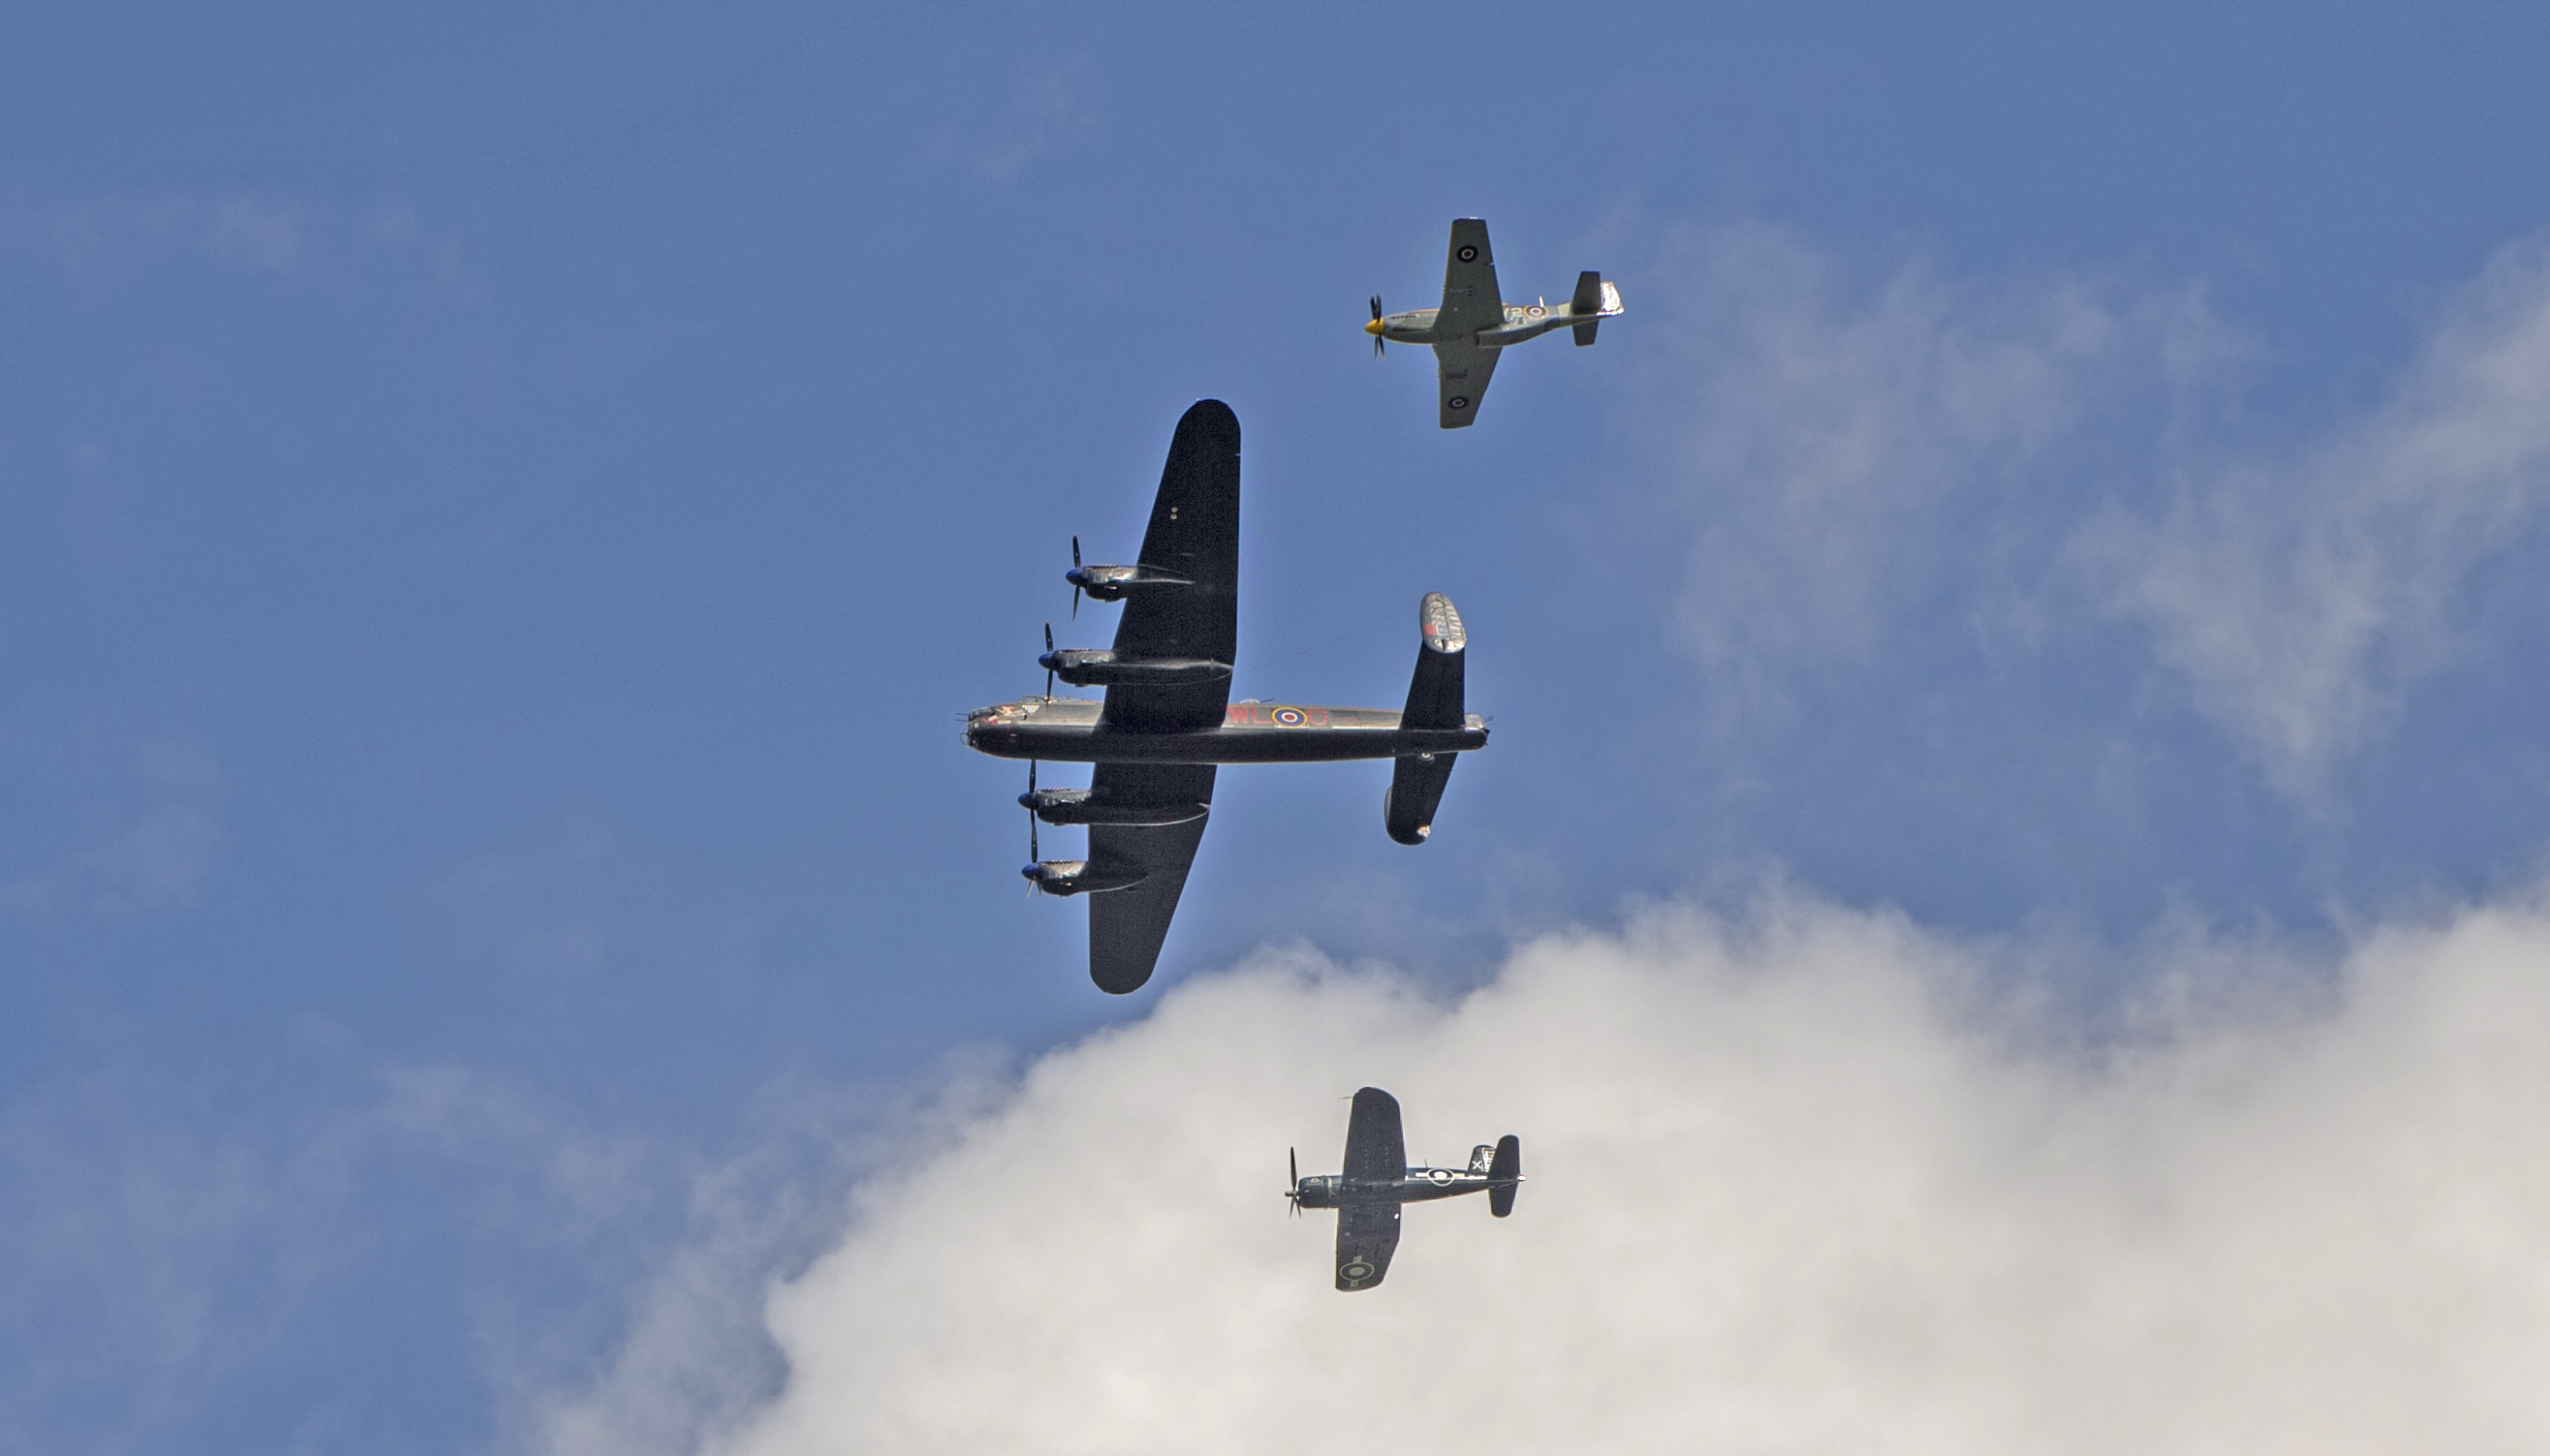 Vintage and current RCAF aircraft conducted a flypast during the national ceremony marking the 76th anniversary of the Battle of Britain, held at the Canada Aviation and Space Museum on September 18, 2016. Das cette image (du haut jusqu'en bas); le  Mustang du 442e Escadron ,  l'Avro Lancaster de Mynarski, et le Corsair de Robert Hampton Gray. PHOTO: Corporal Alana Morin, FA03-2016-0032-003, FA03-2016-0032-003